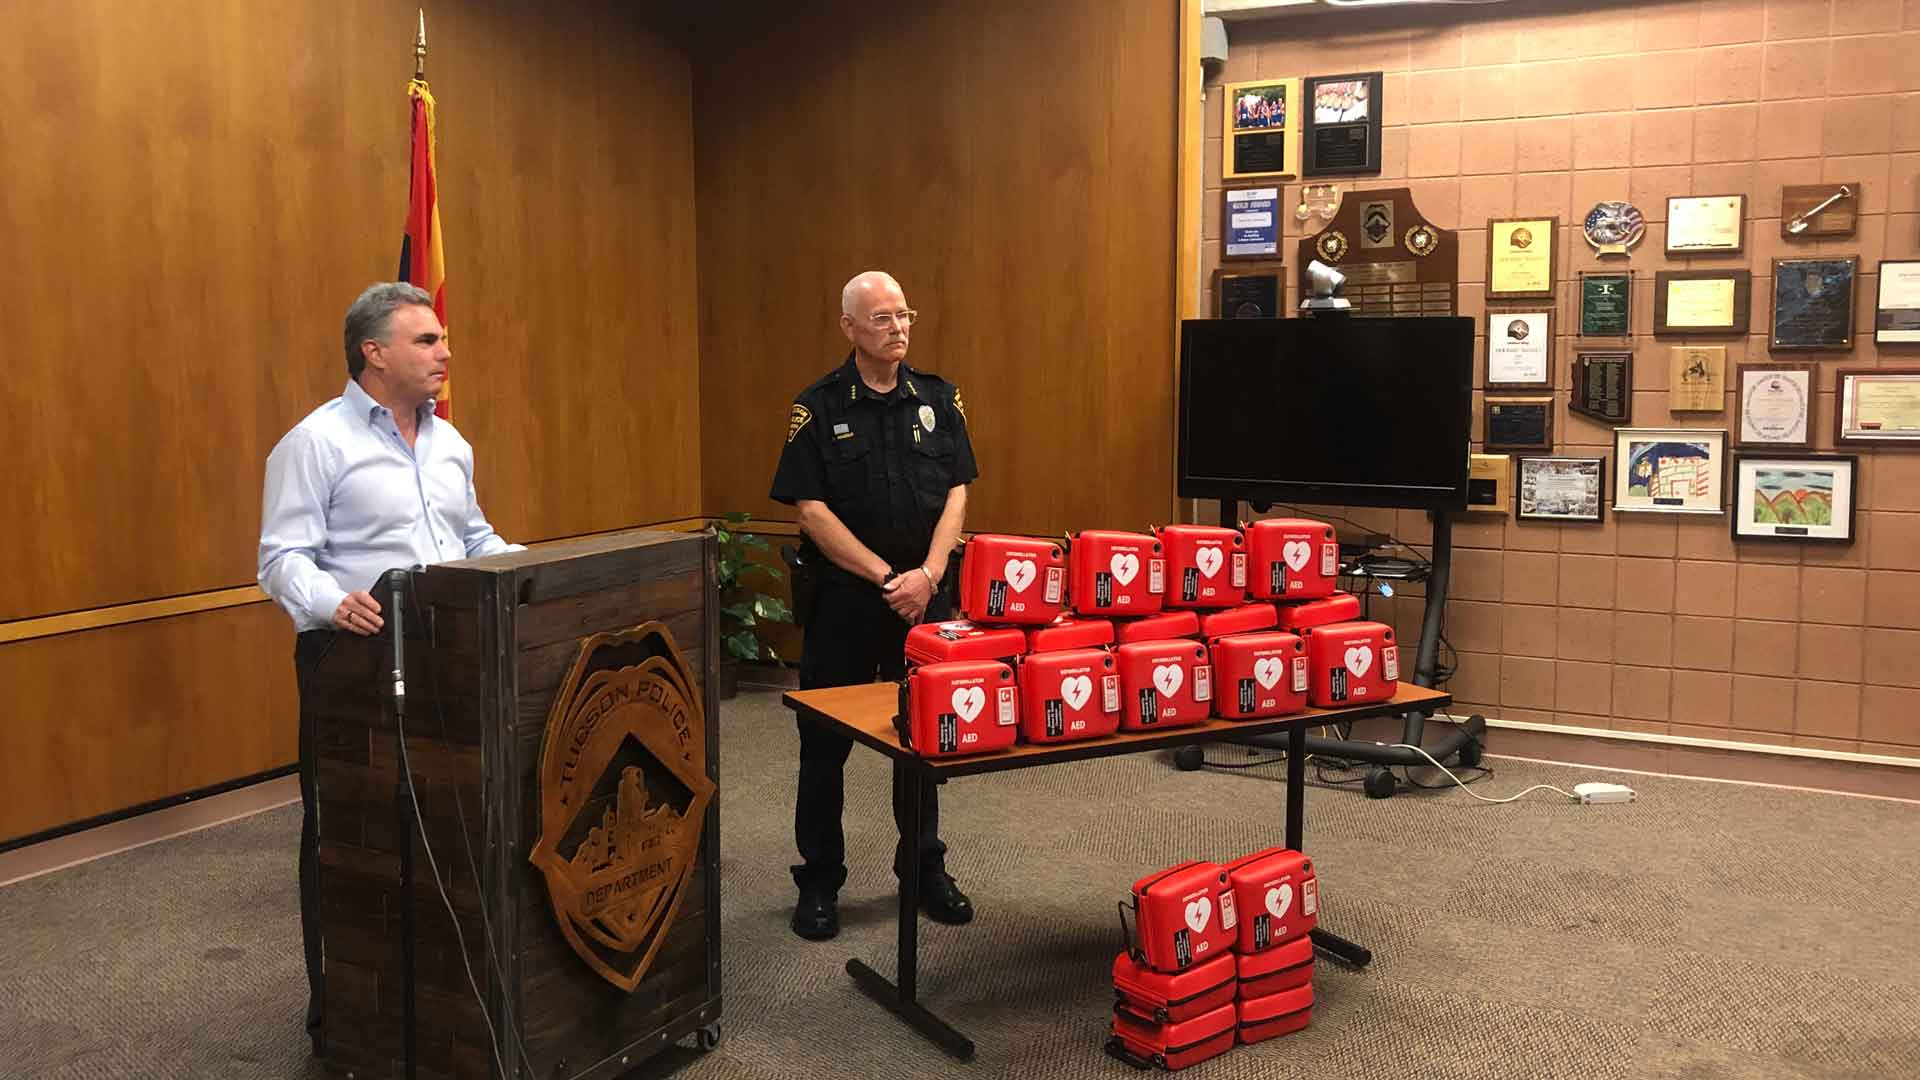 Tucson Police Chief Chris Magnus receives 25 AEDs from Andrew Messing, the president of the Steven M. Gooter Foundation. June 22, 2021